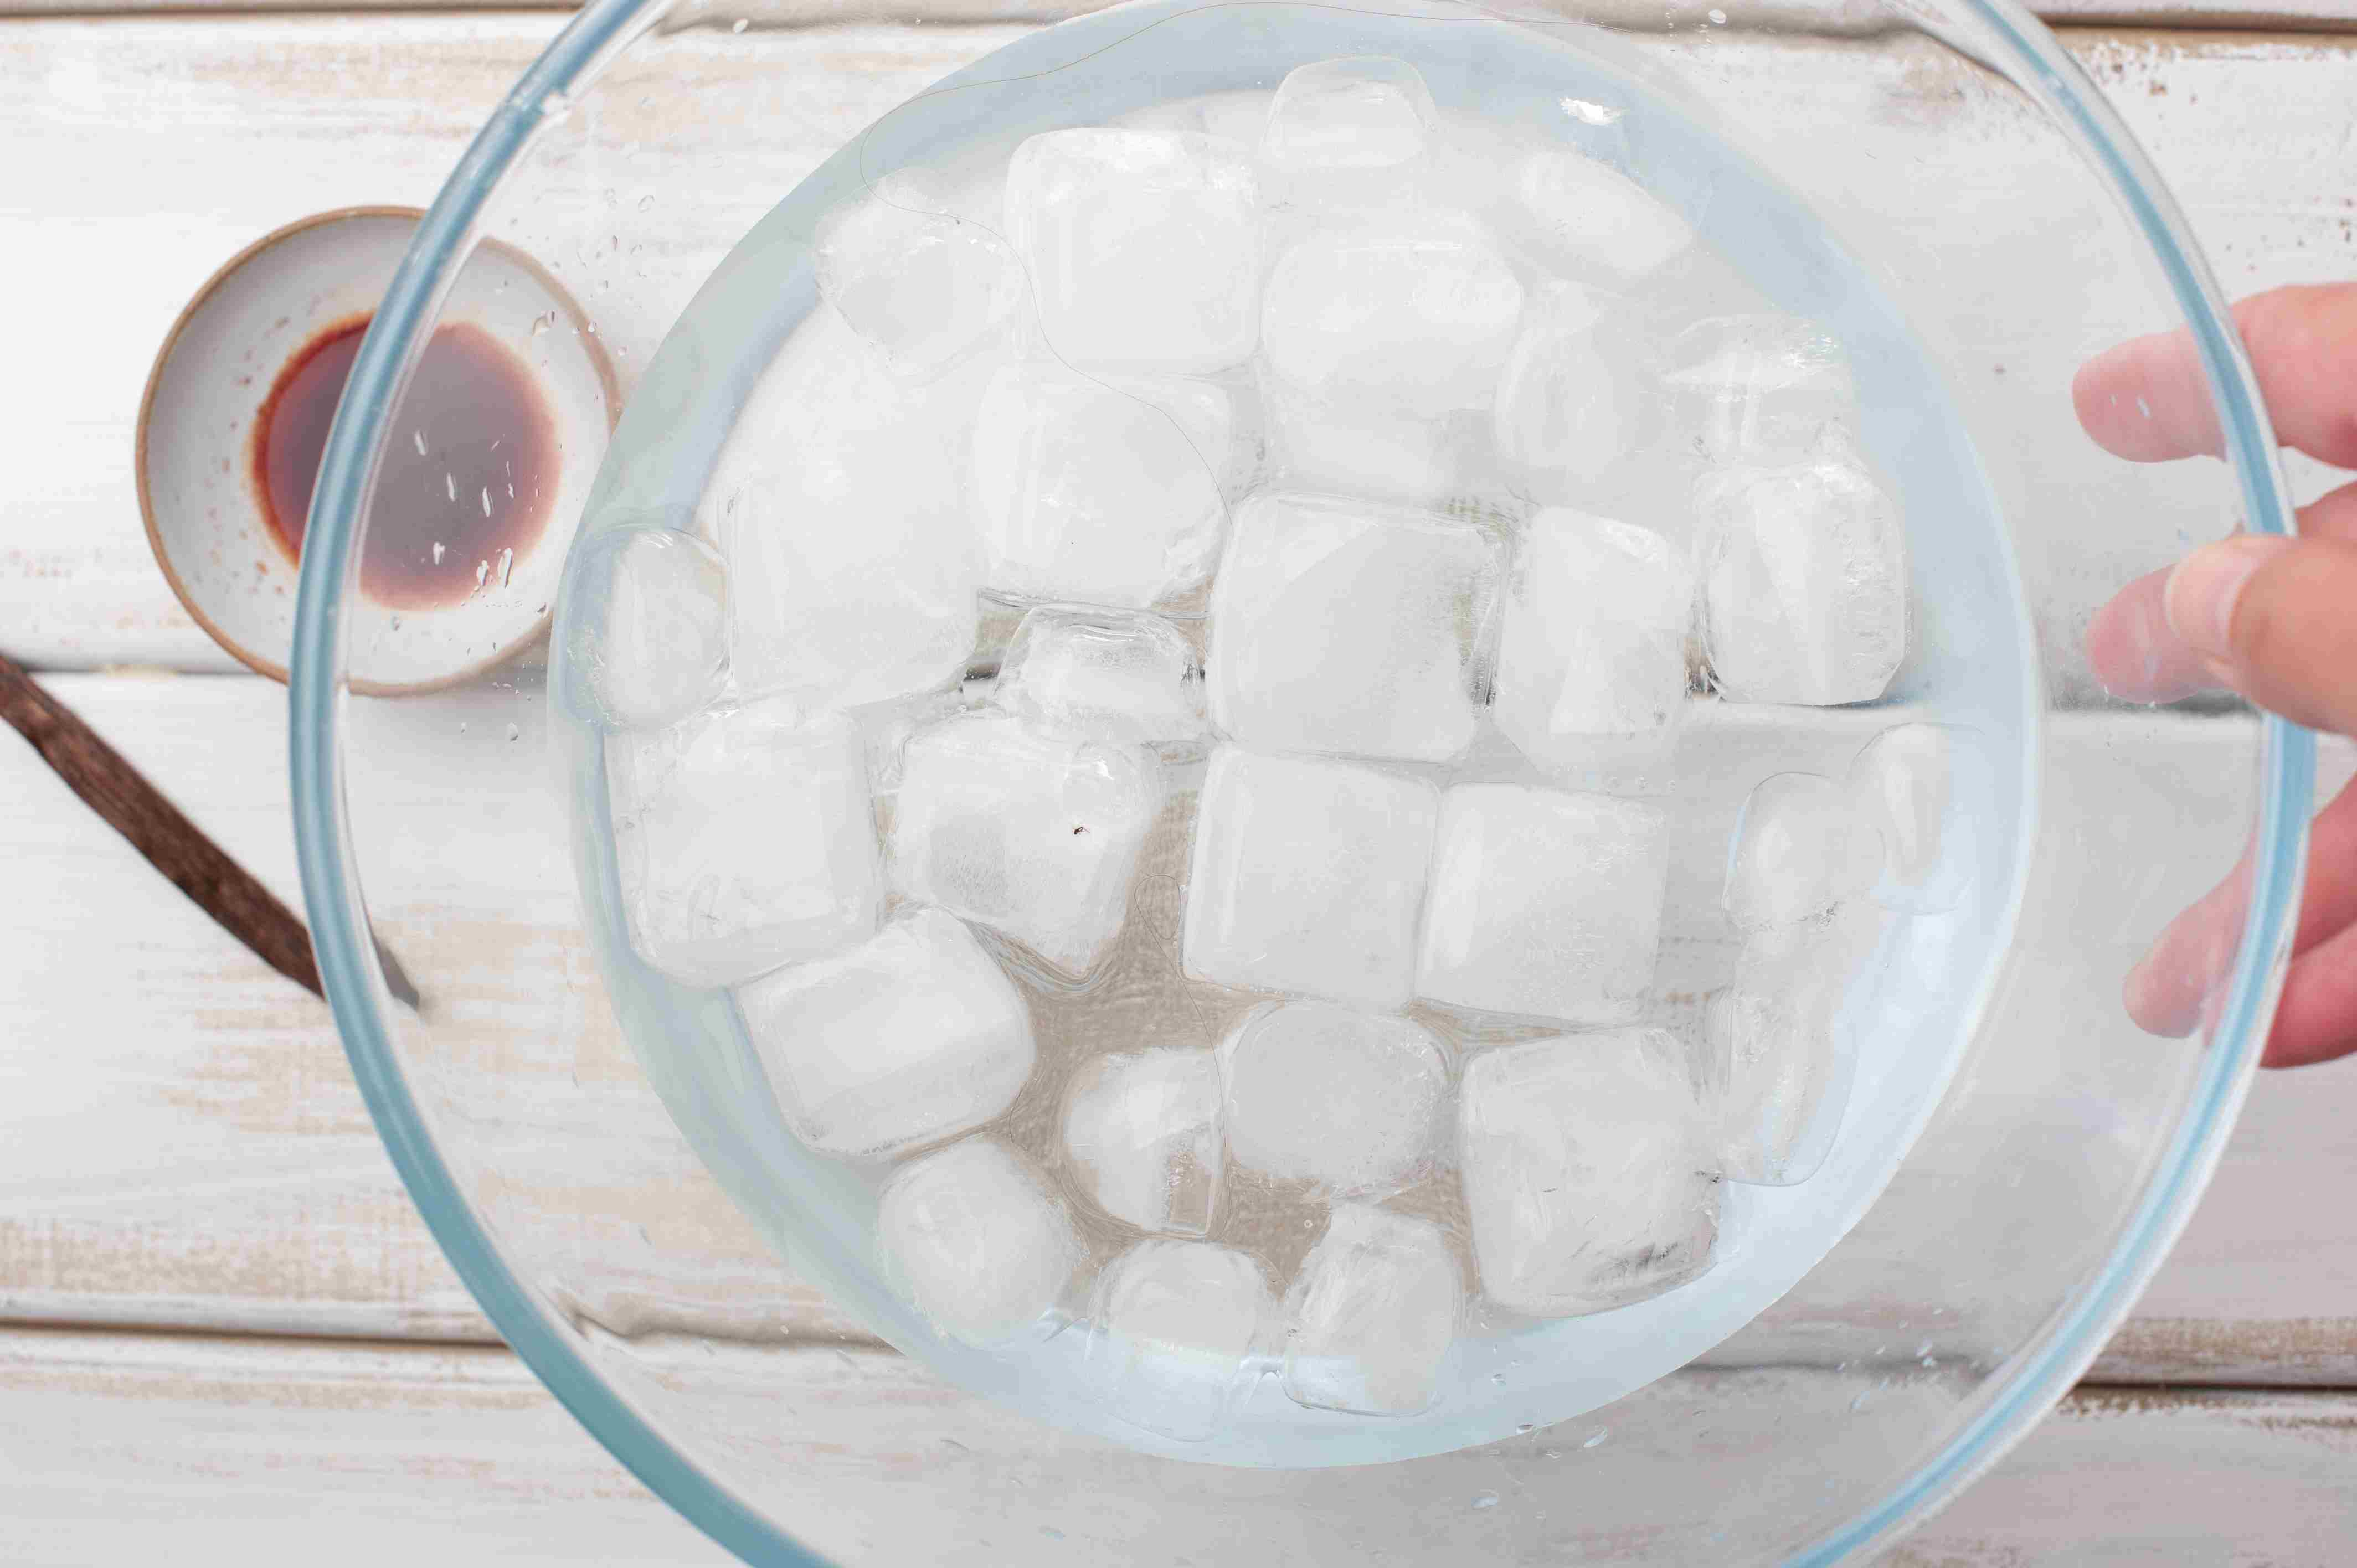 Fill a bowl with ice